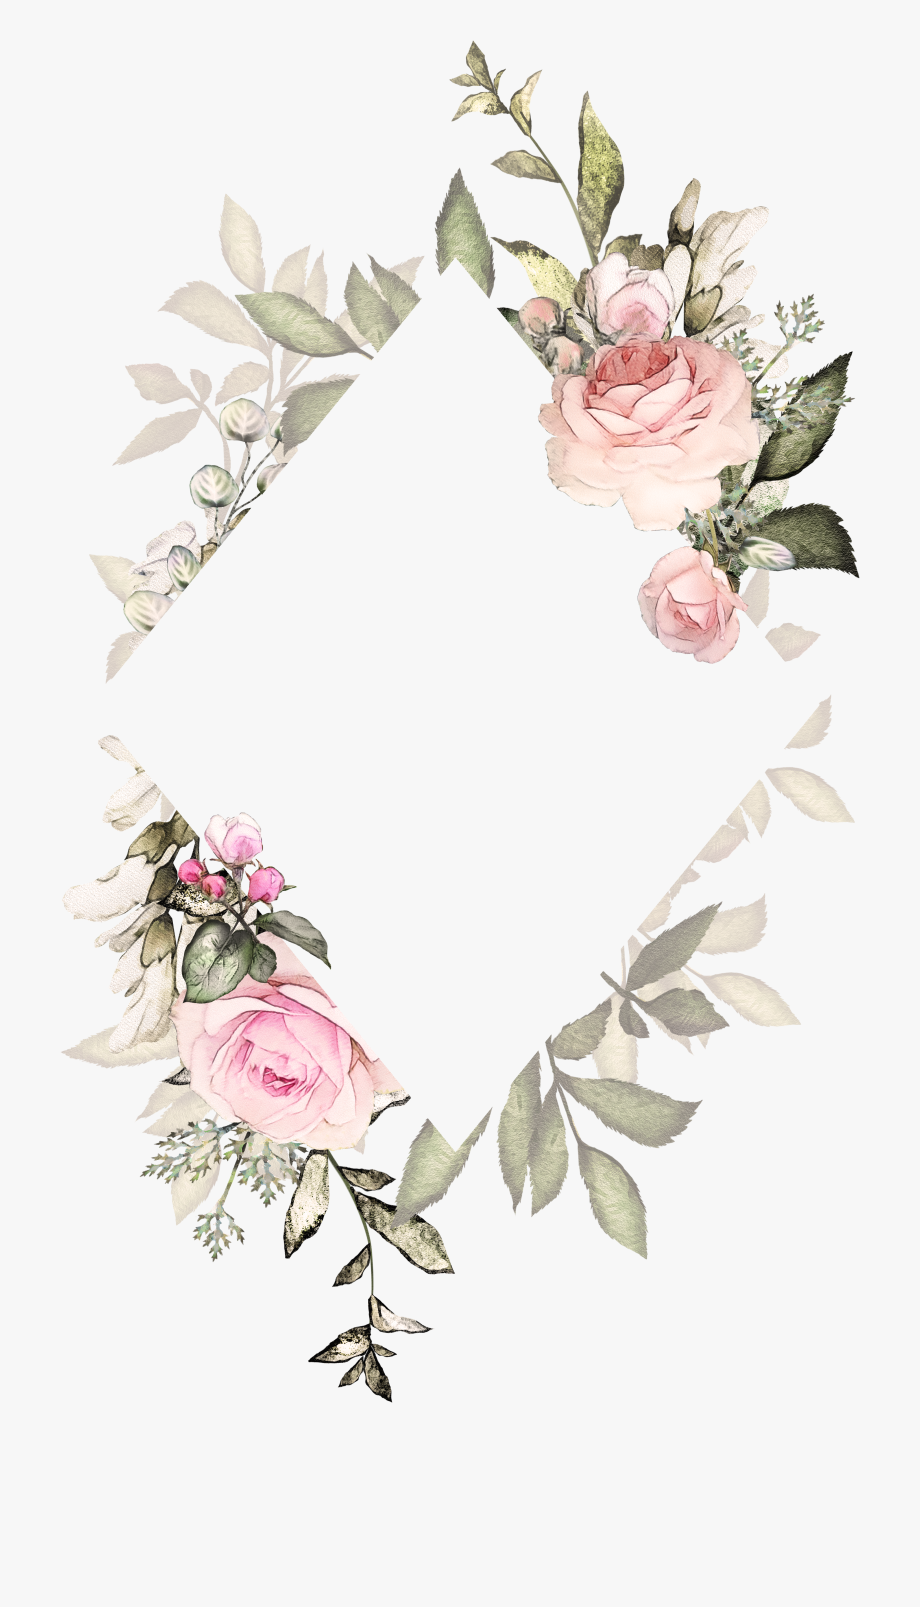 Flower Background Clipart Cartoons Discover Ideas About Phone Backgrounds In 2020 Vintage Floral Backgrounds Flower Background Iphone Floral Watercolor Background